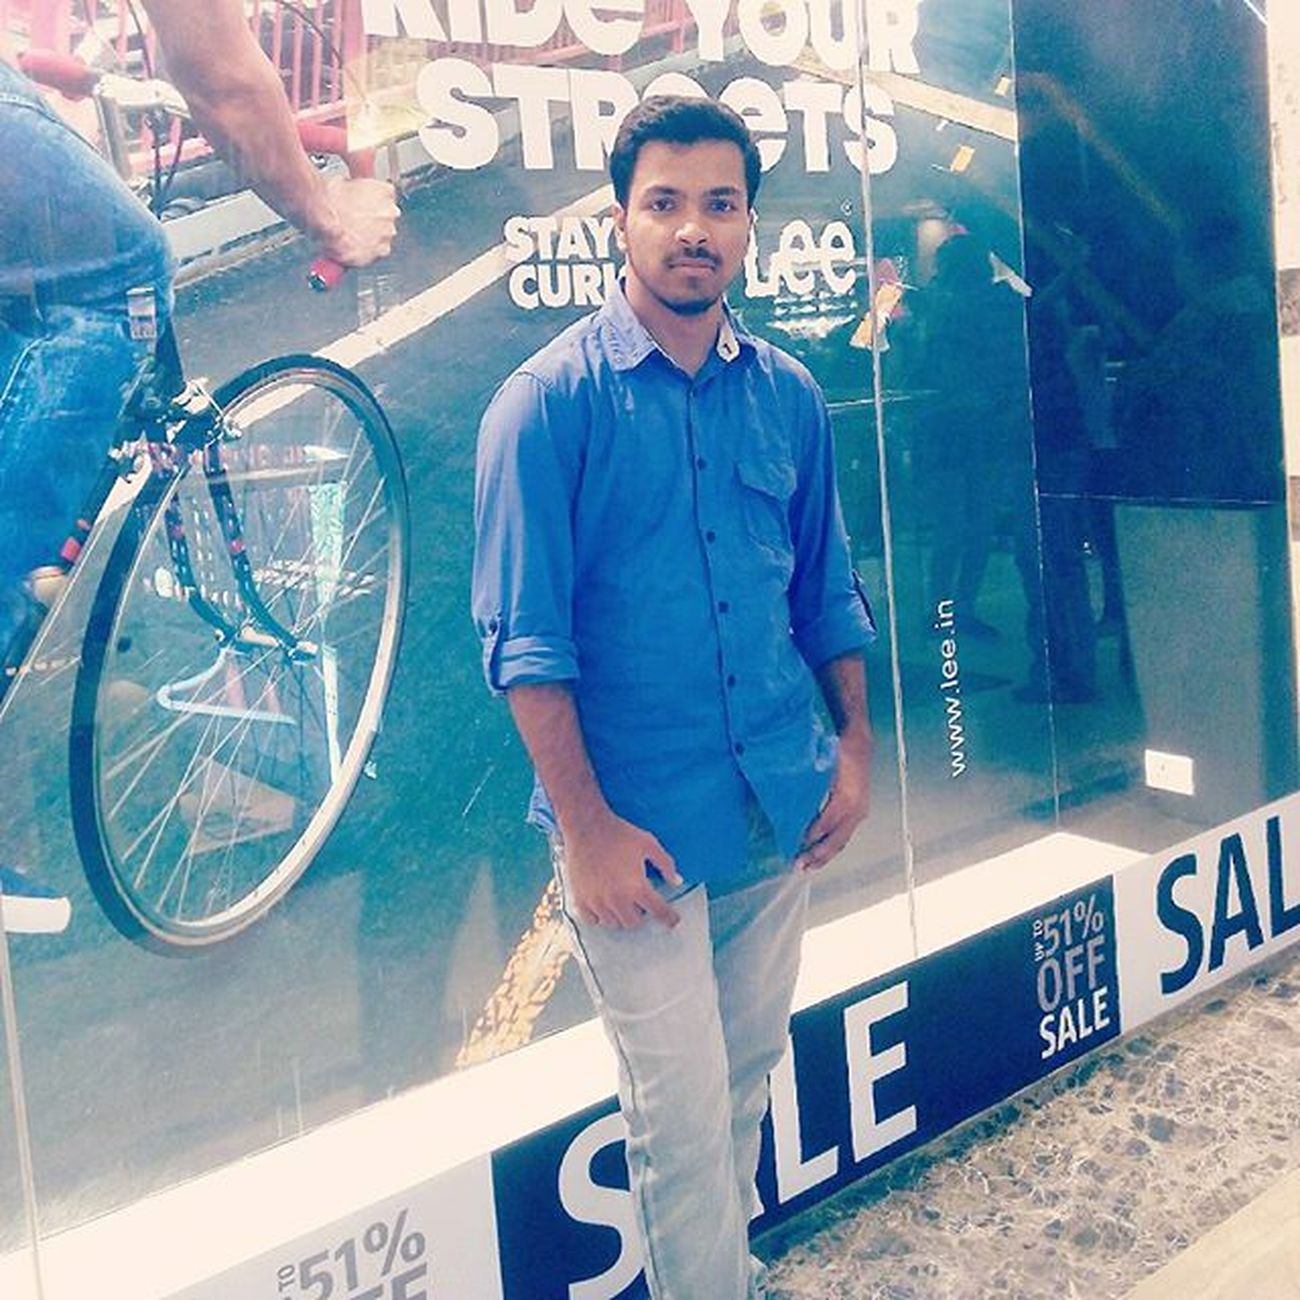 Gaurcentralmall Ghaziabad Mee Blue_my_favourite 😘😘 amazing_day 😉👌